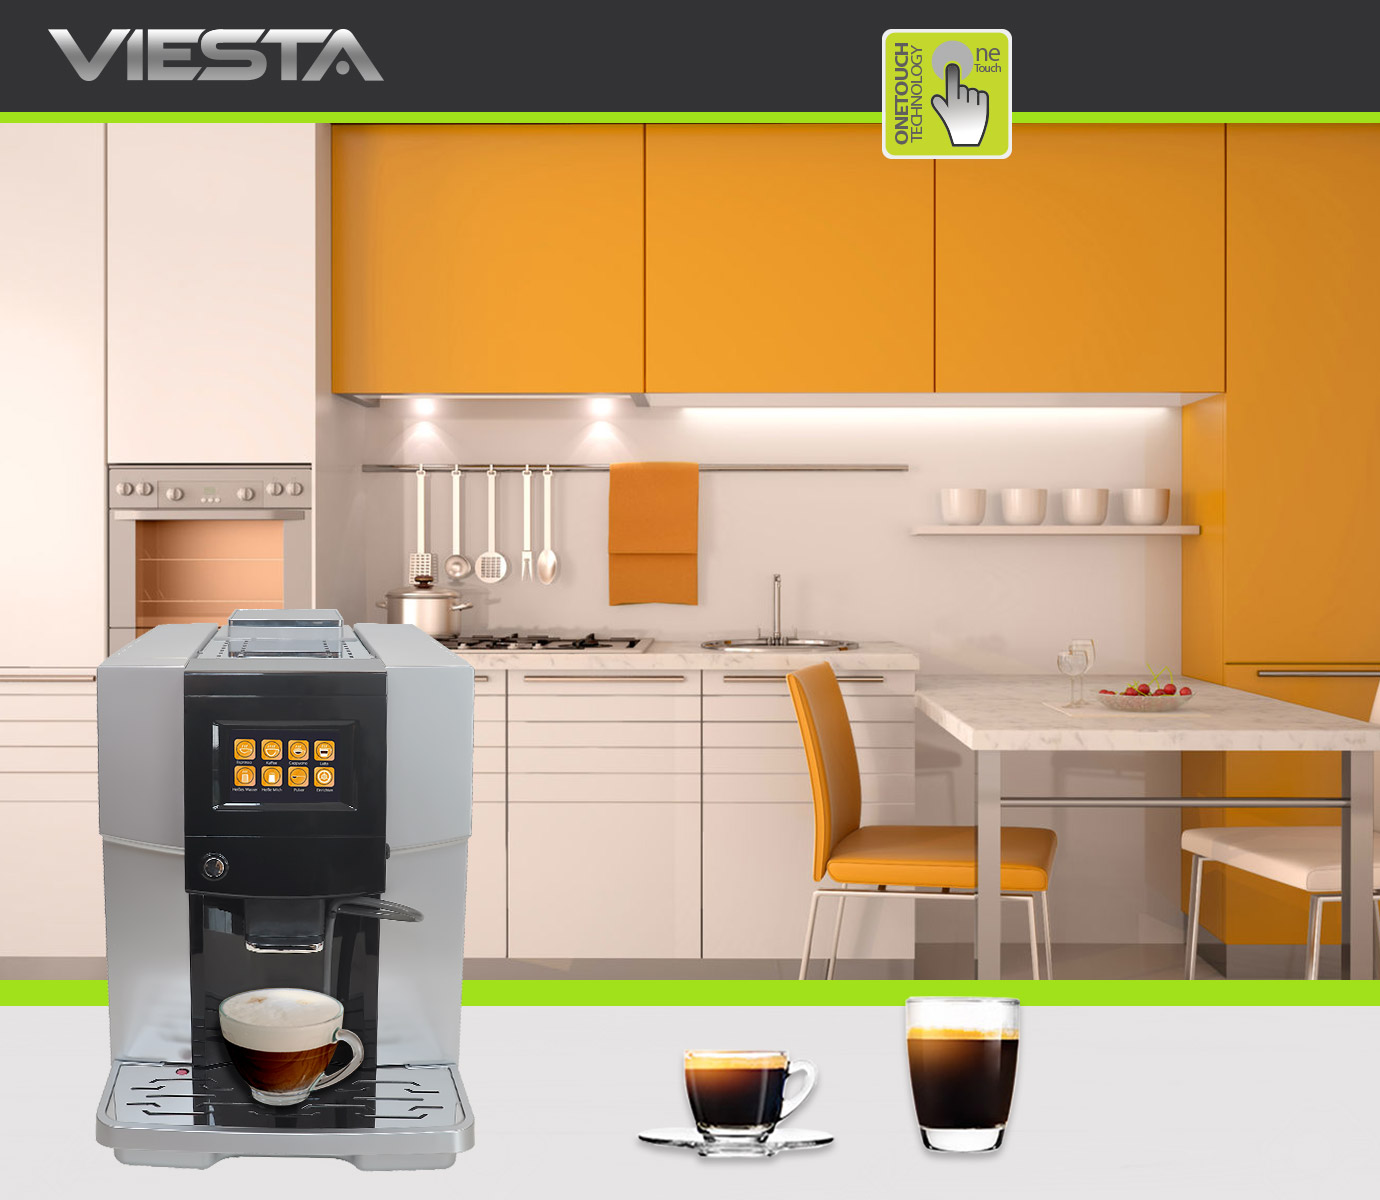 viesta one touch 500 kaffeevollautomat kaffeemaschine mit selbstreinigungssystem ebay. Black Bedroom Furniture Sets. Home Design Ideas